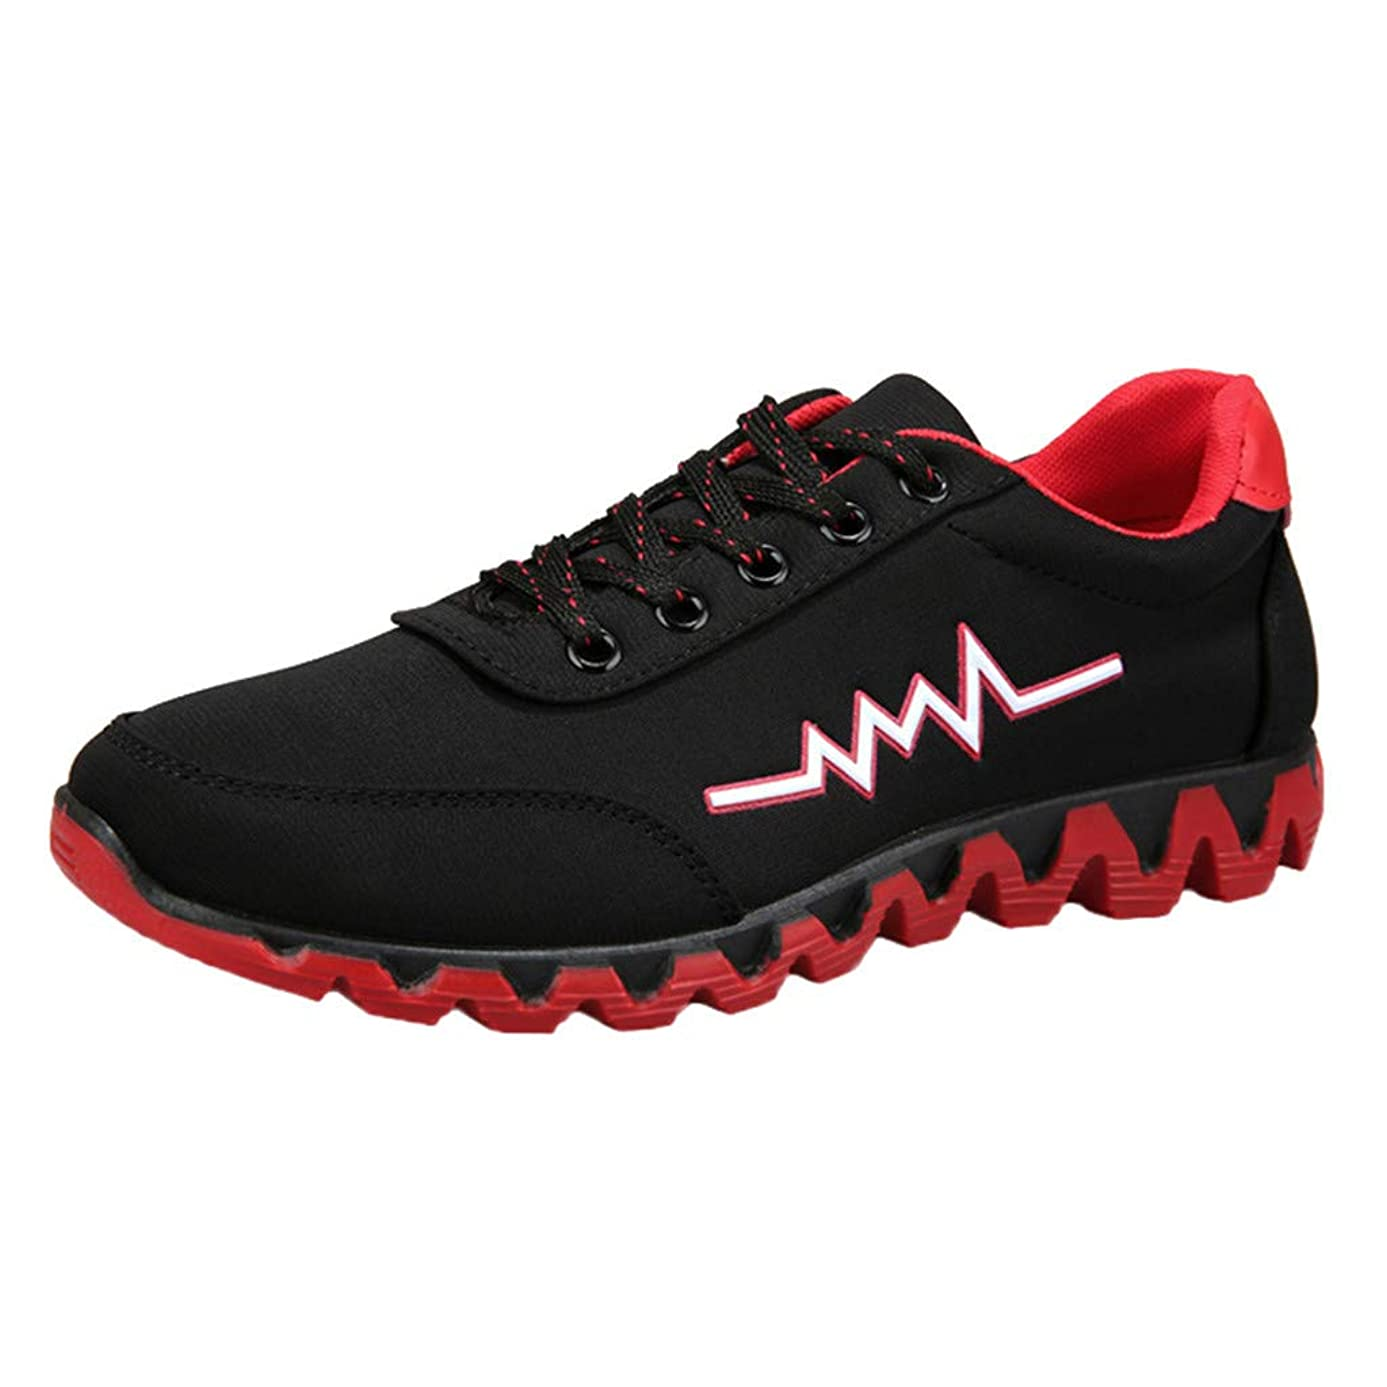 Mens Energy Lace-Up Sneaker,YuhooSun Low Top Shoes Wear Resistant Cross Trainer Ultra Lightweight Professional Anti Slip